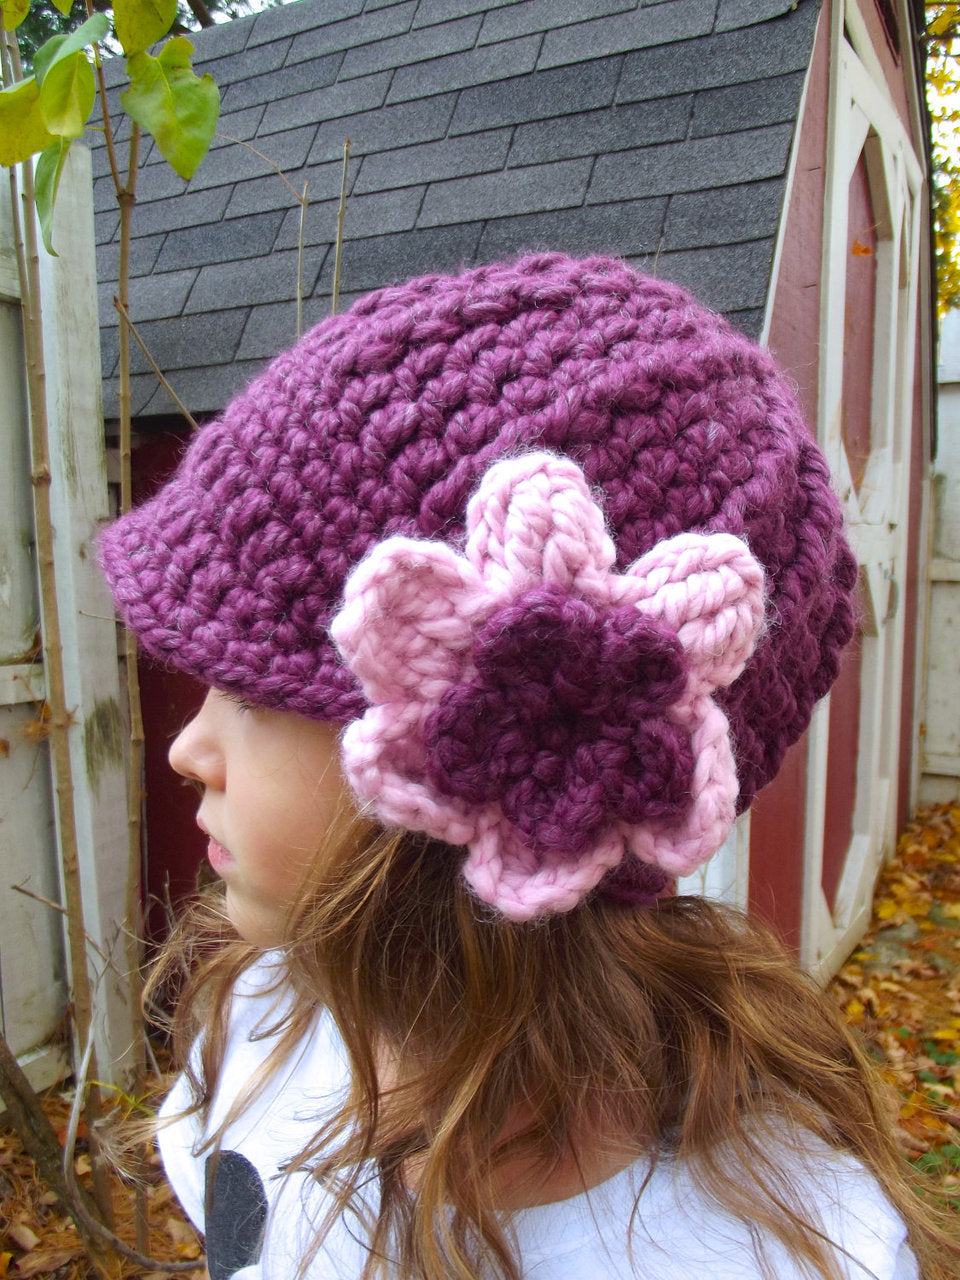 2T to 4T Purple Plum & Pink Blossom | chunky crochet flower beanie, thick winter hat | baby, toddler, girl's, women's sizes by Two Seaside Babes